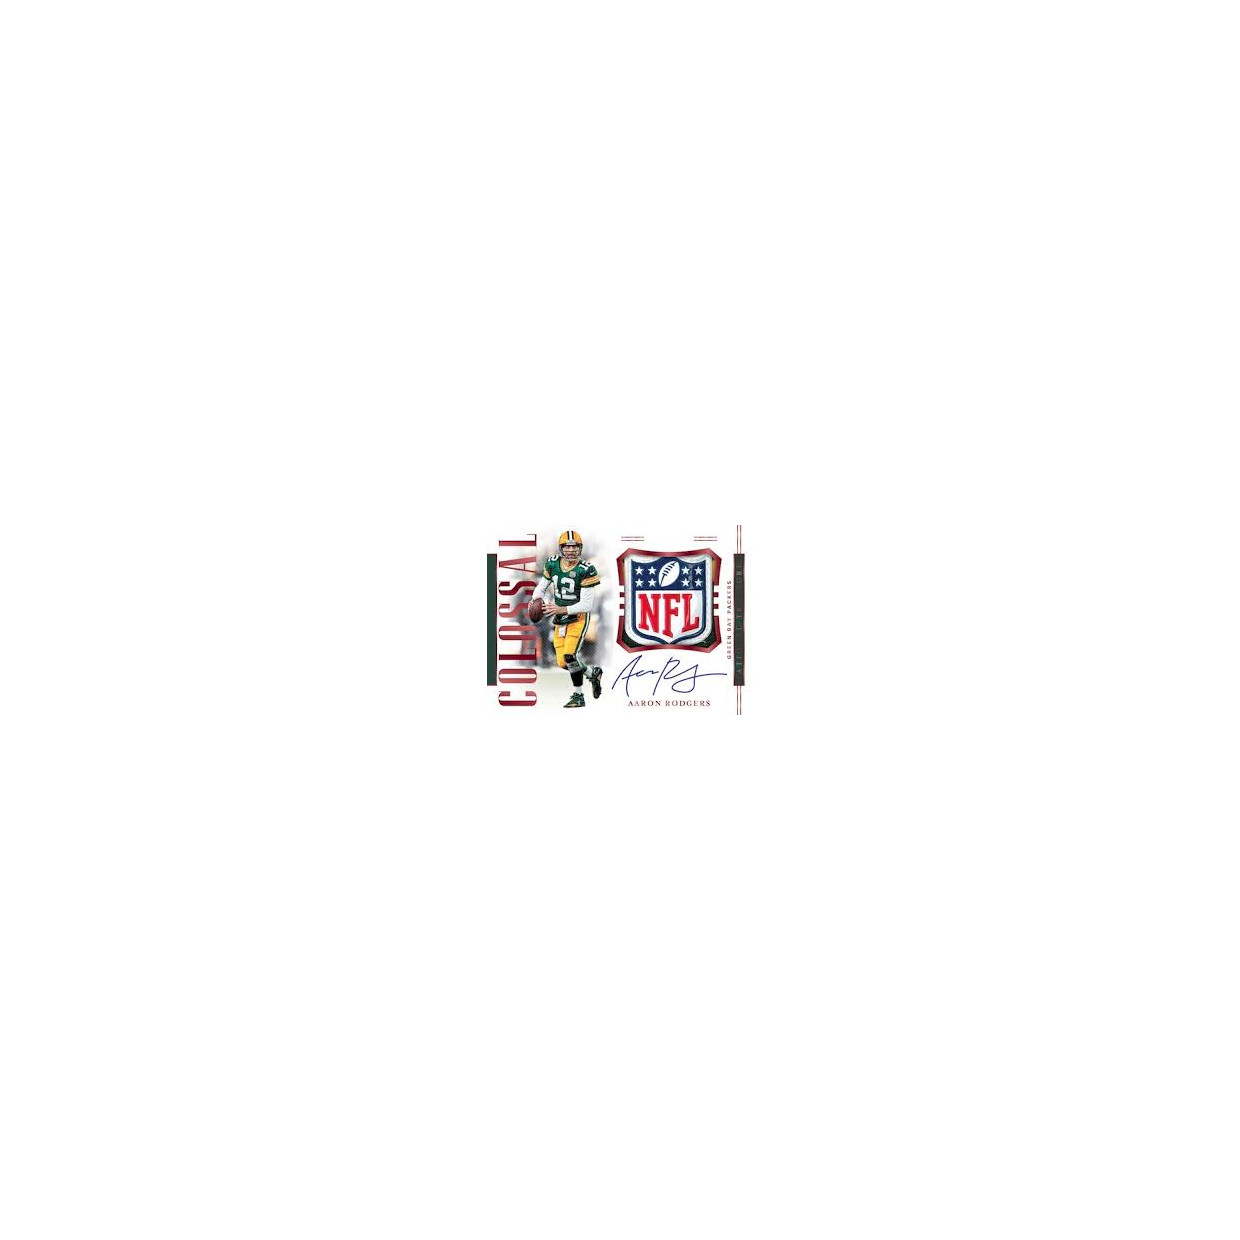 **FILLER** 2018 National Treasures FB PYT #8 - Browns, Cardinals, Steelers, 49ers, Falcons, etc